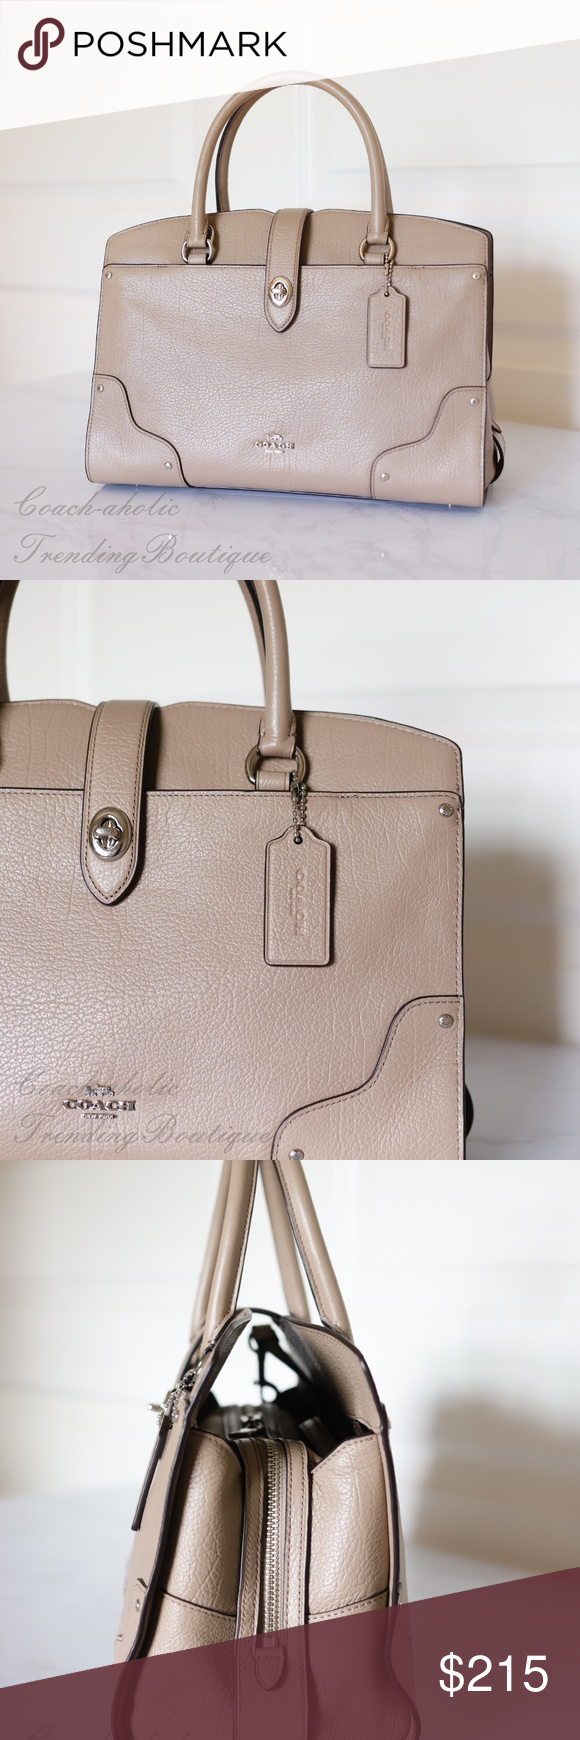 NWT Coach F37575 Grain Leather Mercer Satchel 30 In Stone//Silver MSRP $395